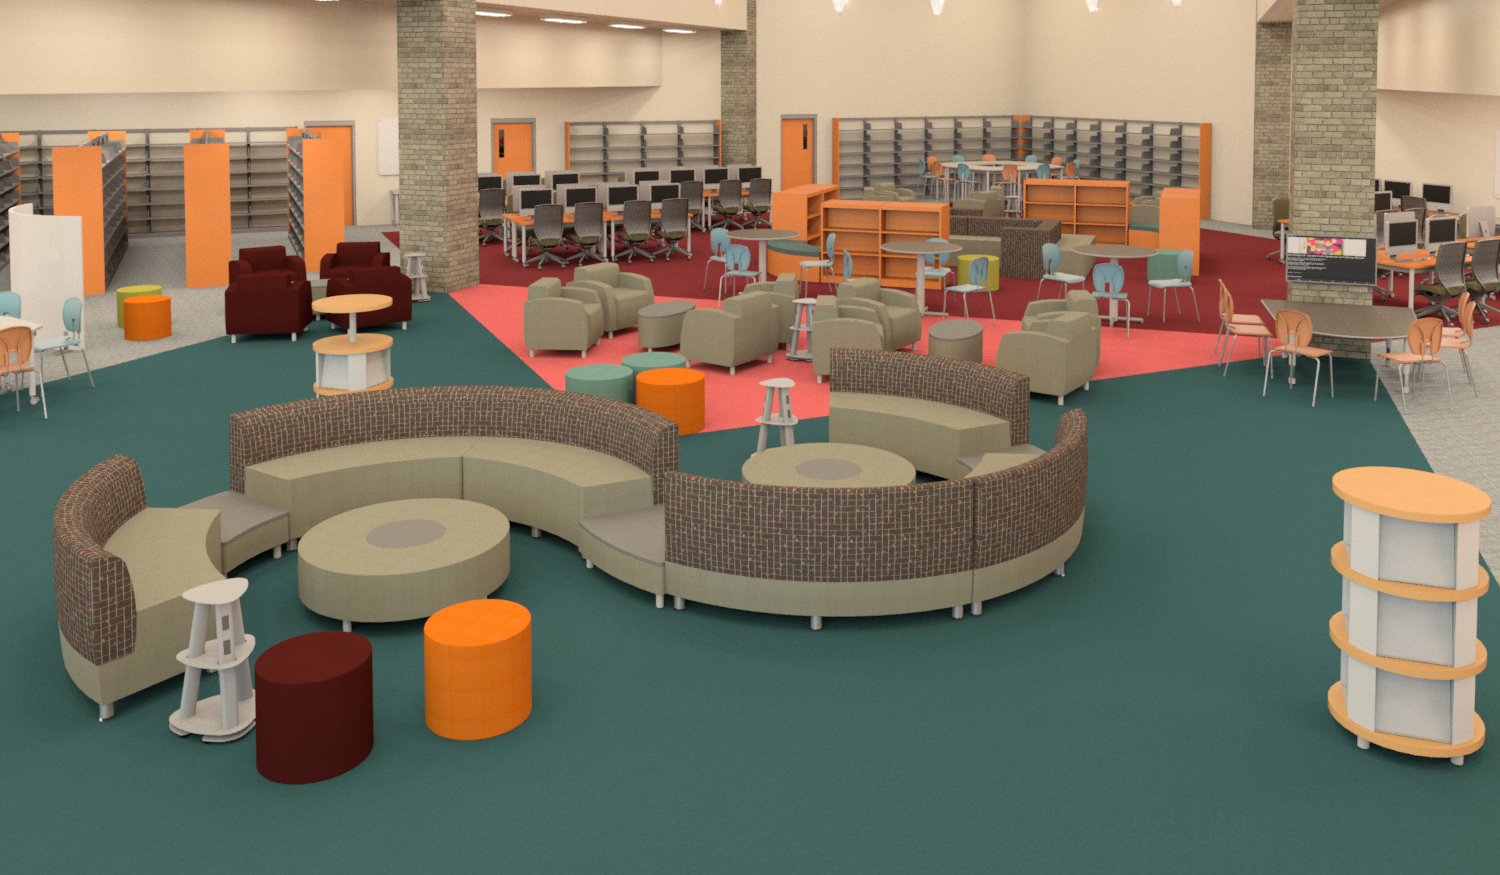 High school library learning environment